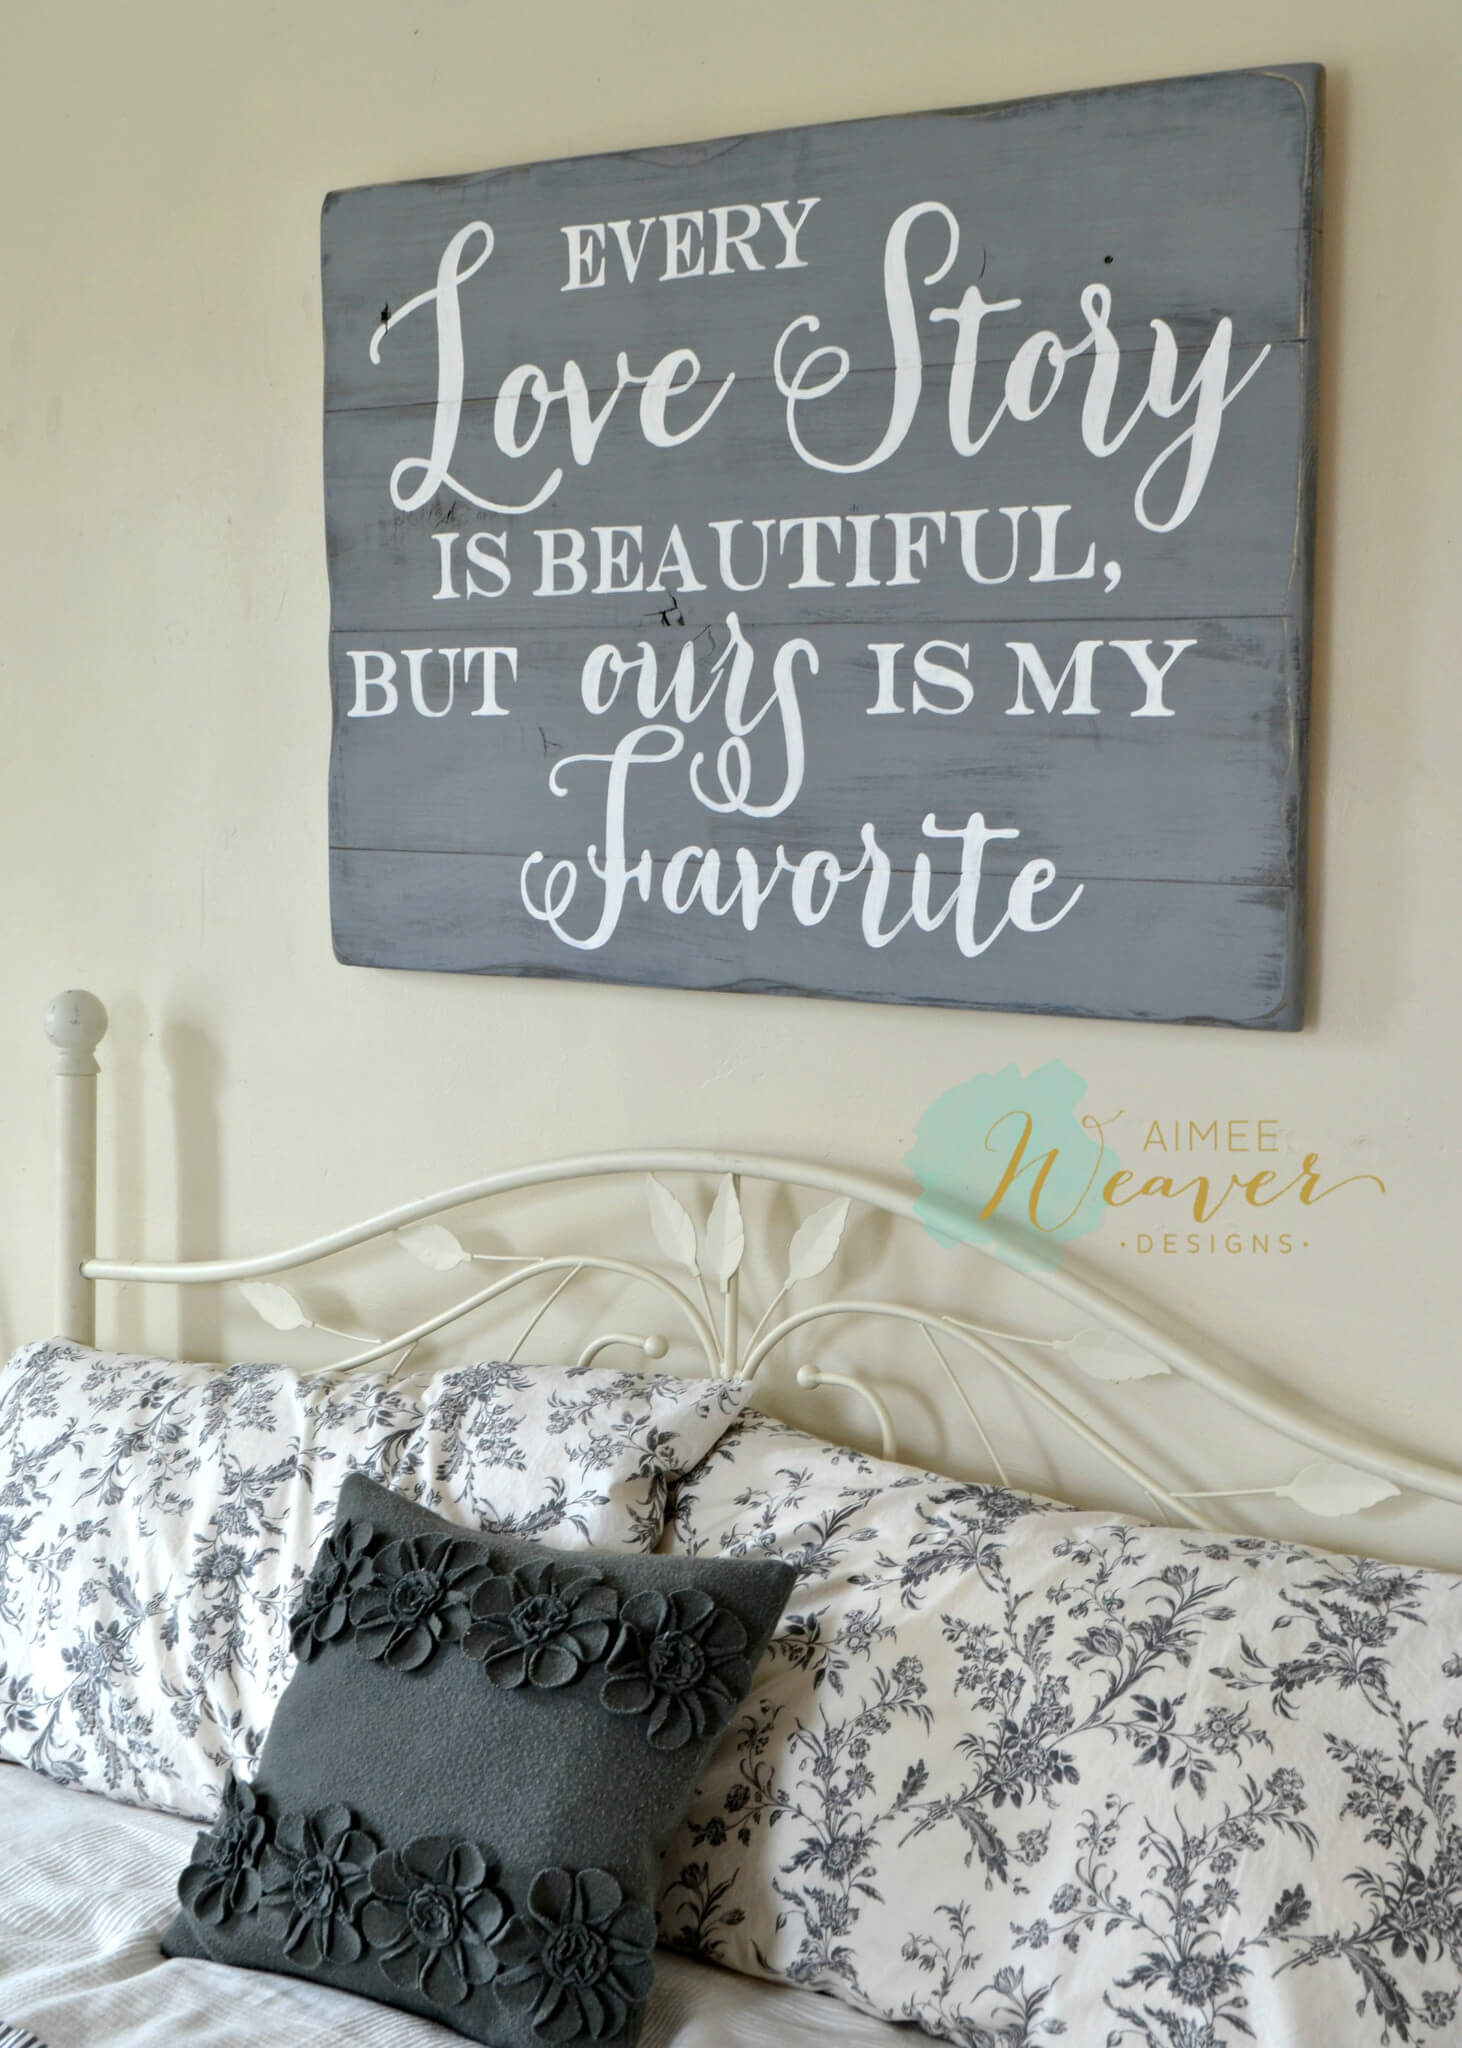 DIY Love Story Pallet Art